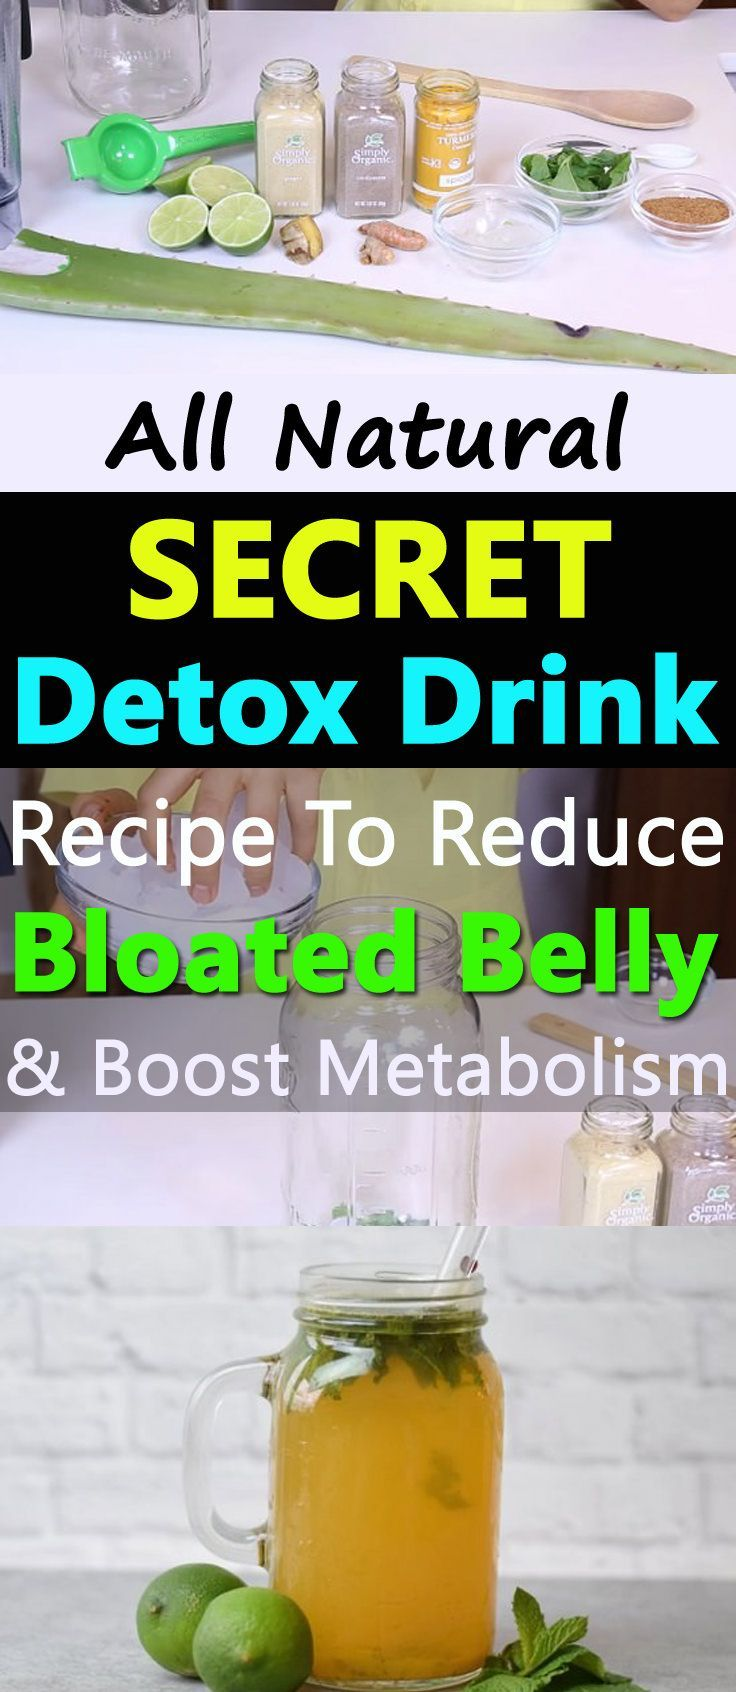 Prepare yourself for a drink that fight belly bloat while